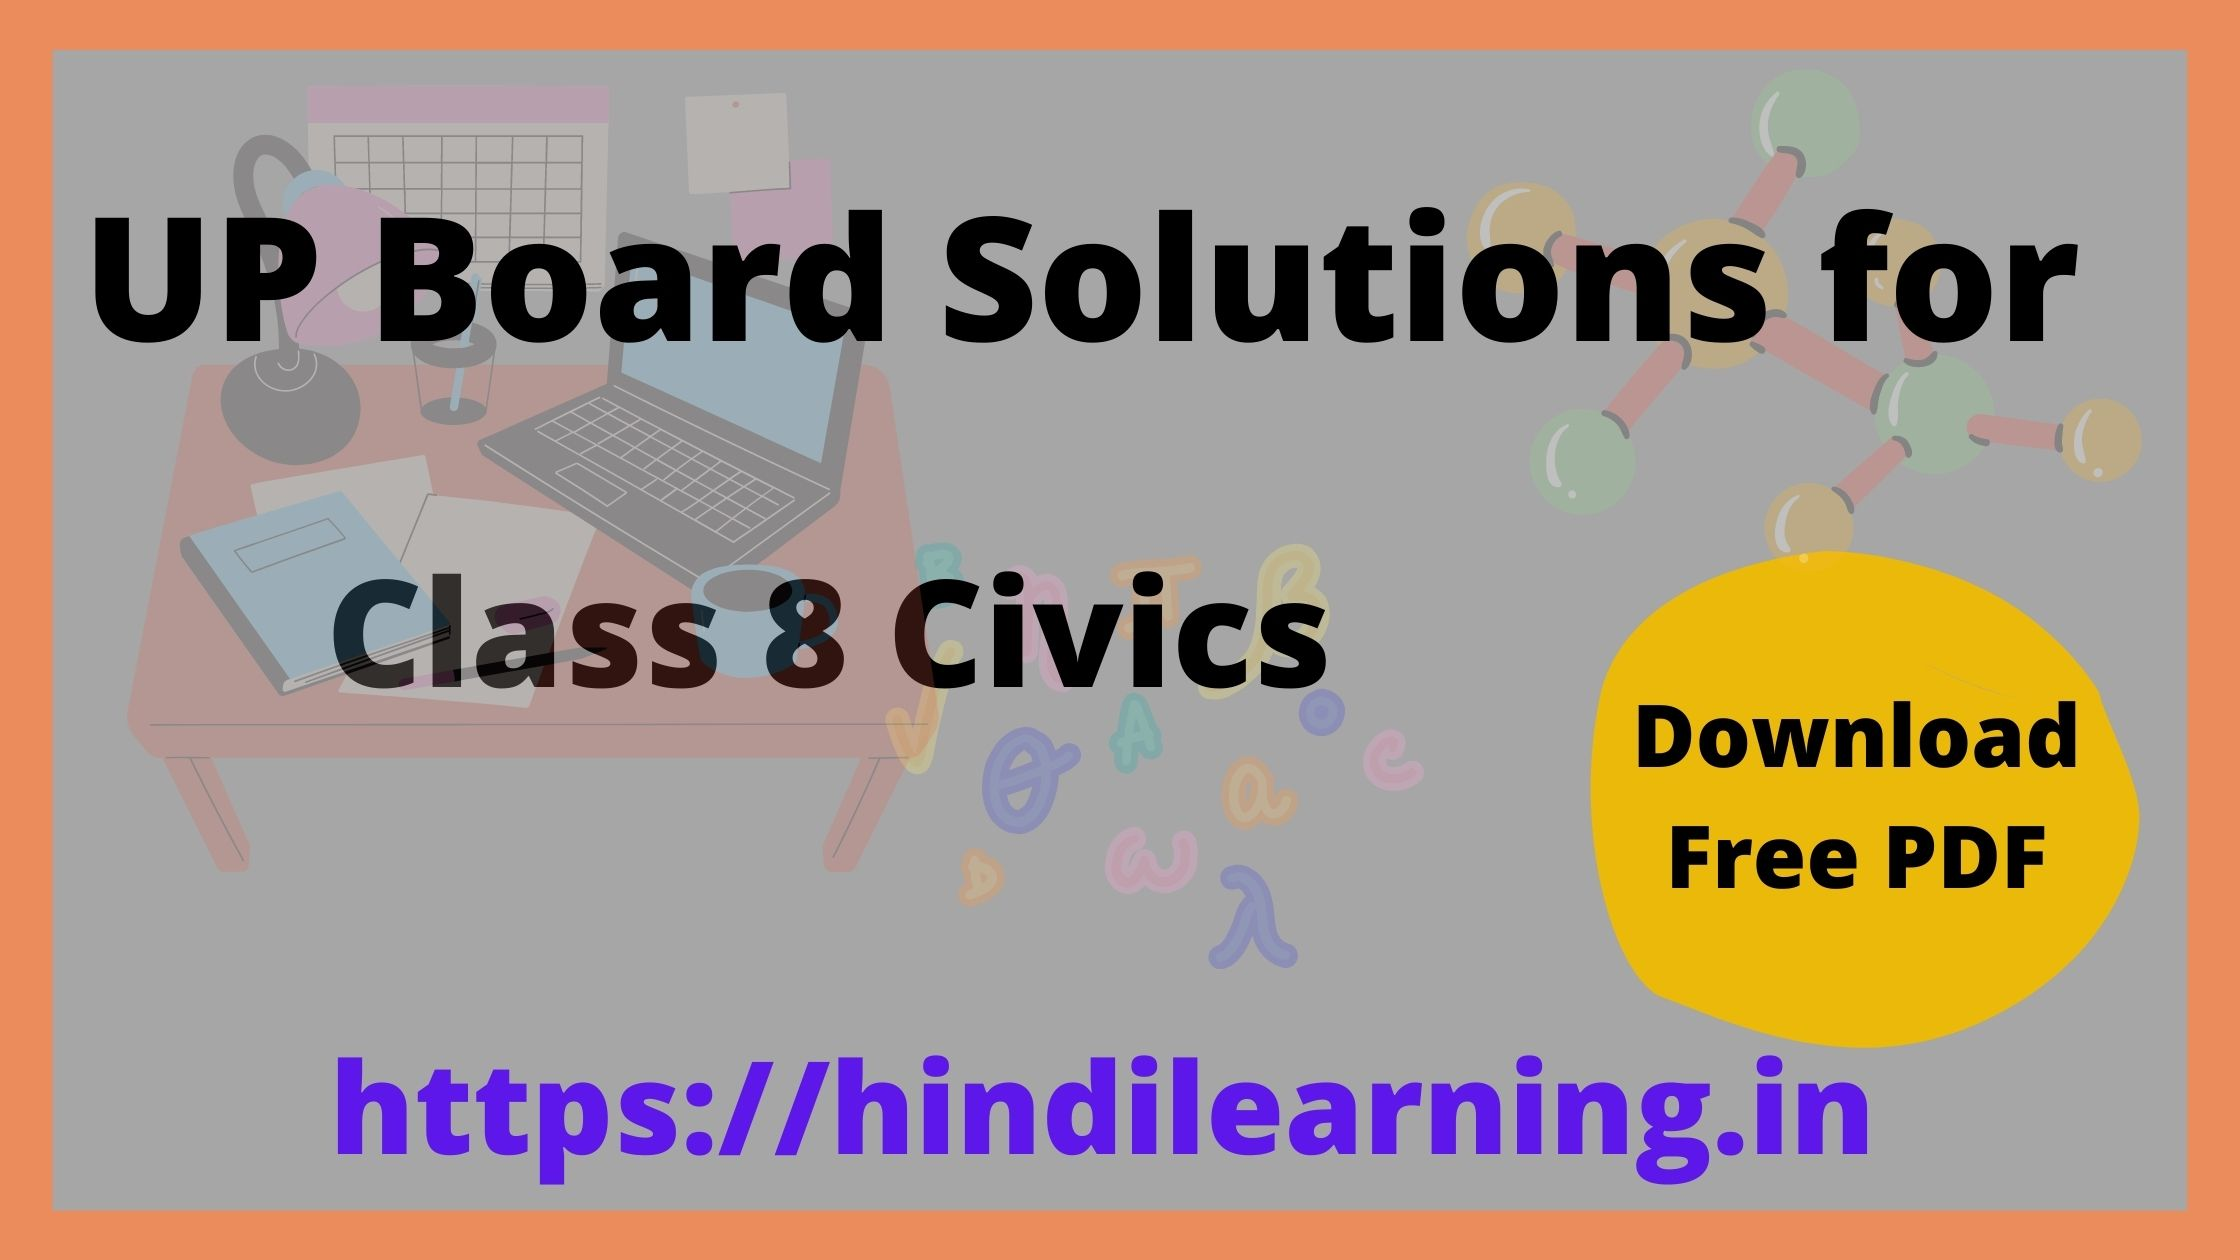 UP Board Solutions for Class 8 Civics (नागरिक शास्त्र)